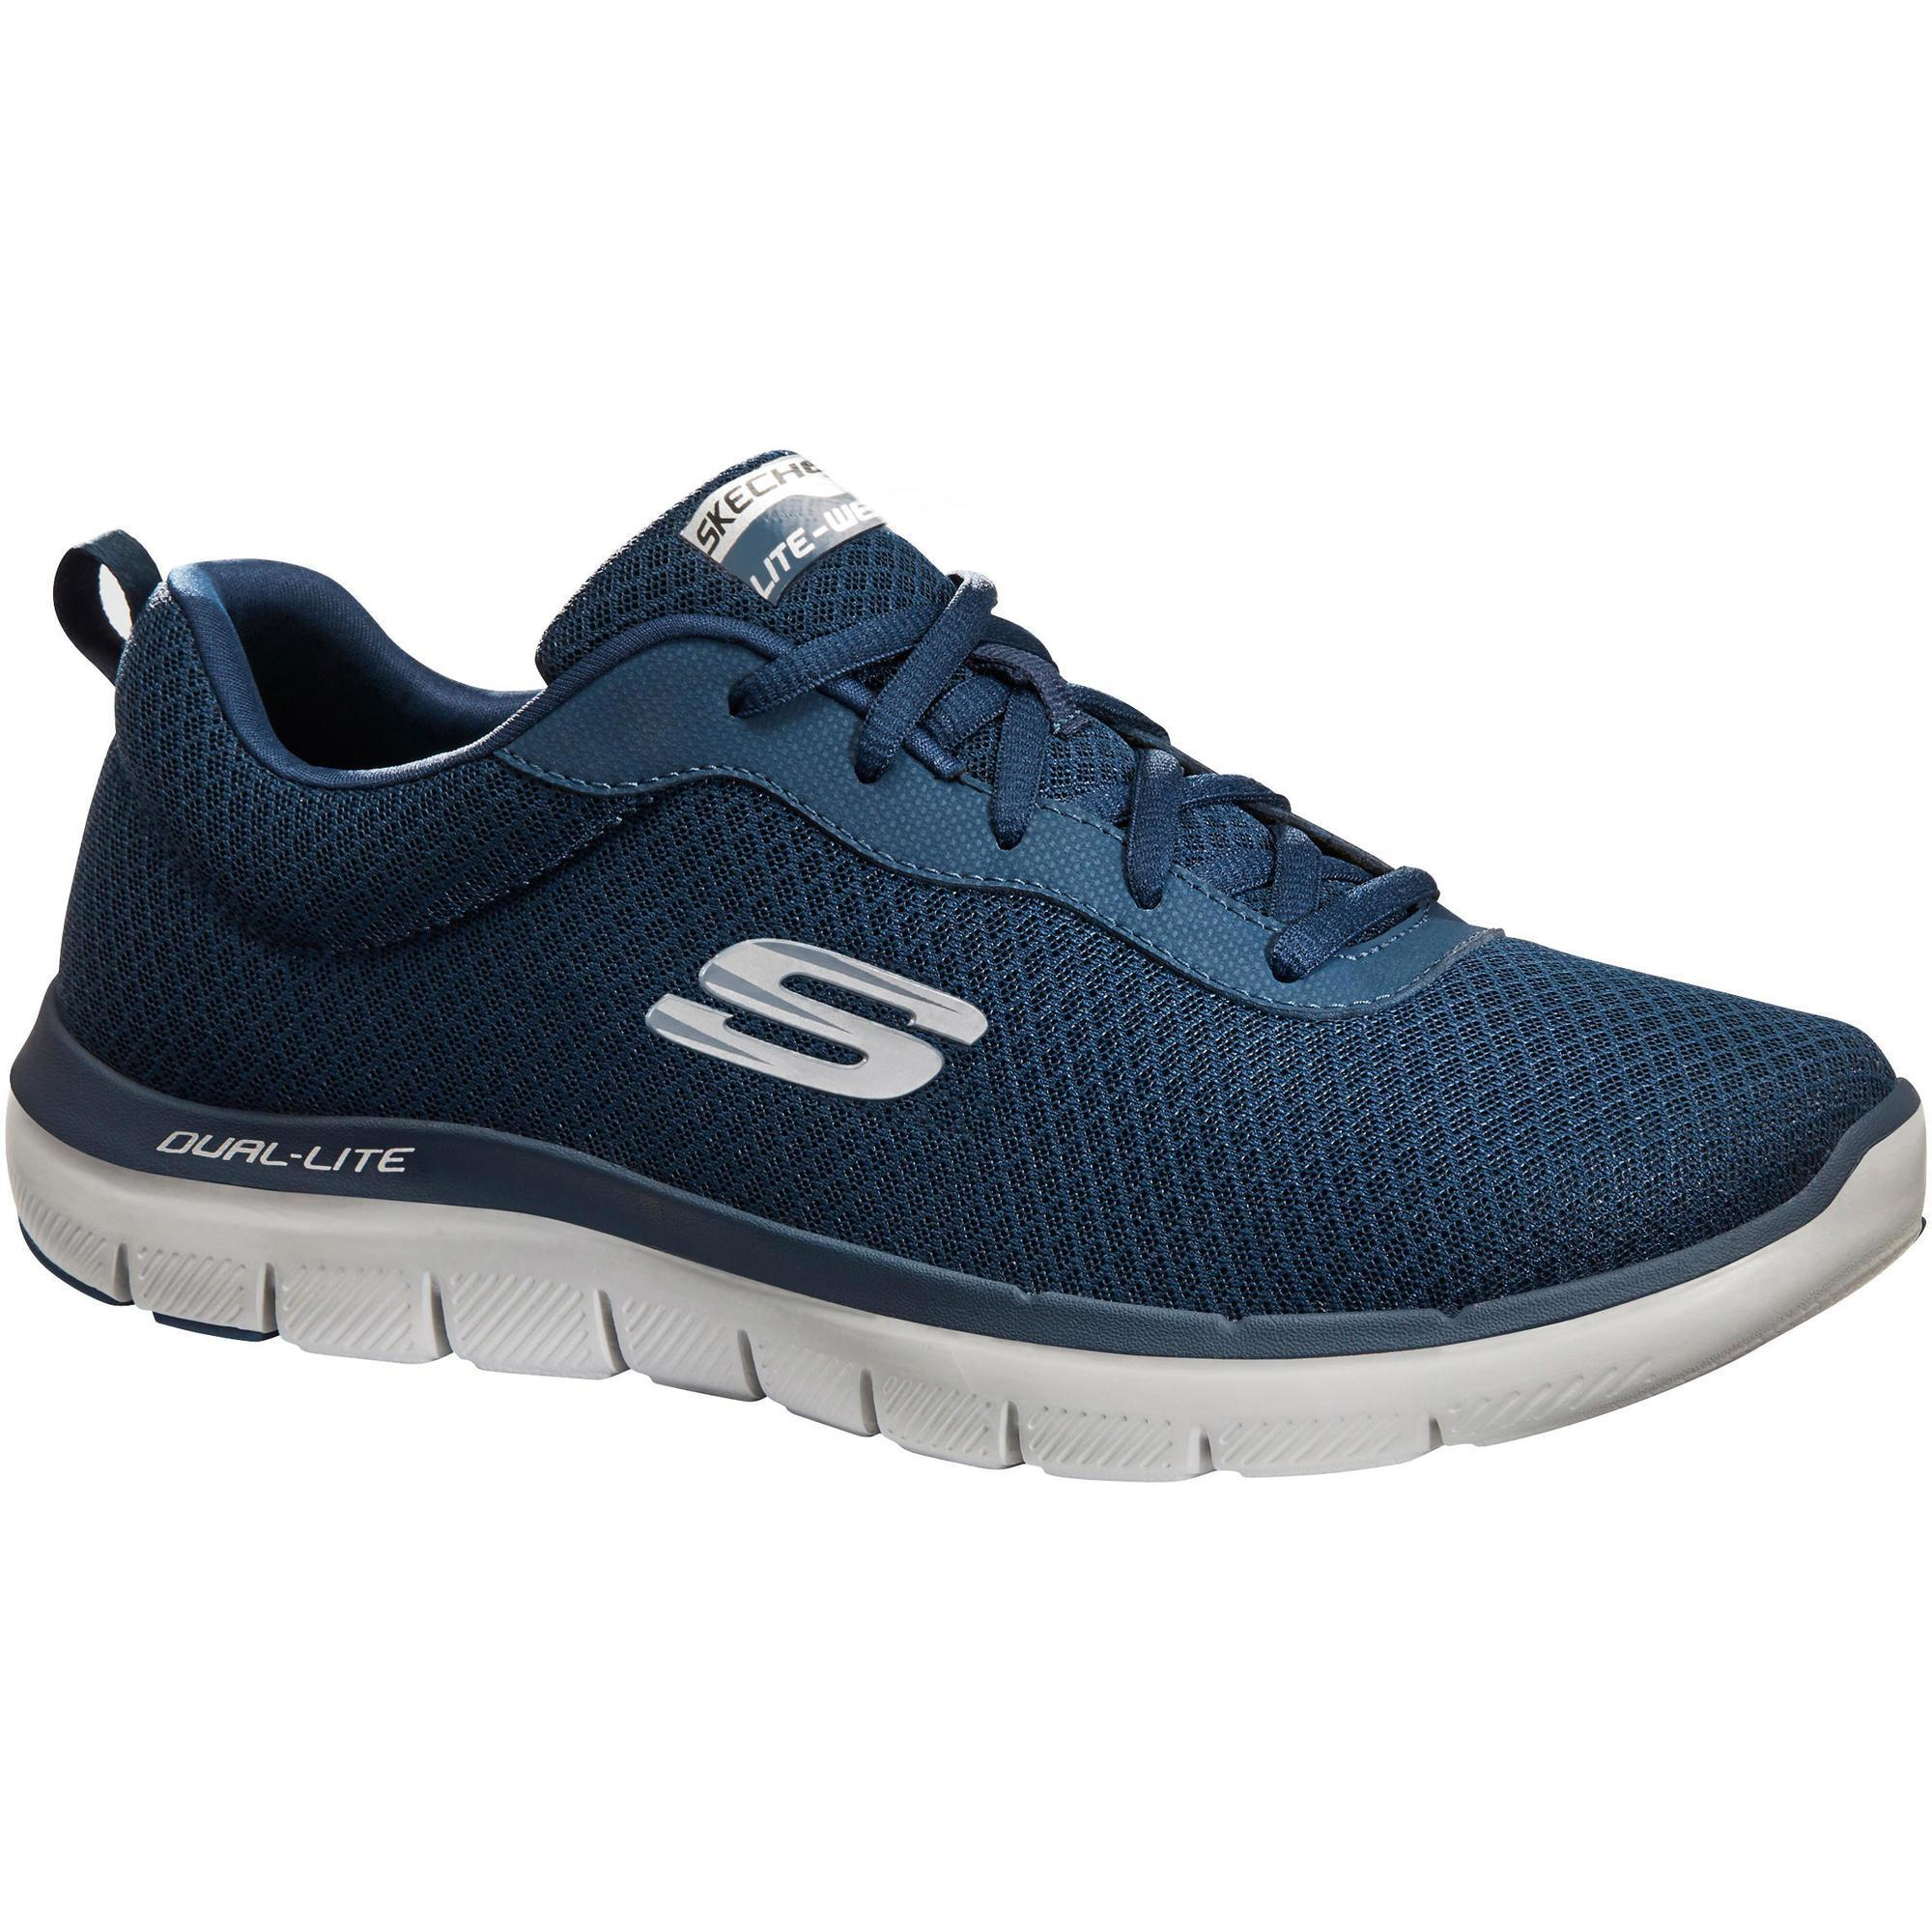 skechers homme memory foam lit weight